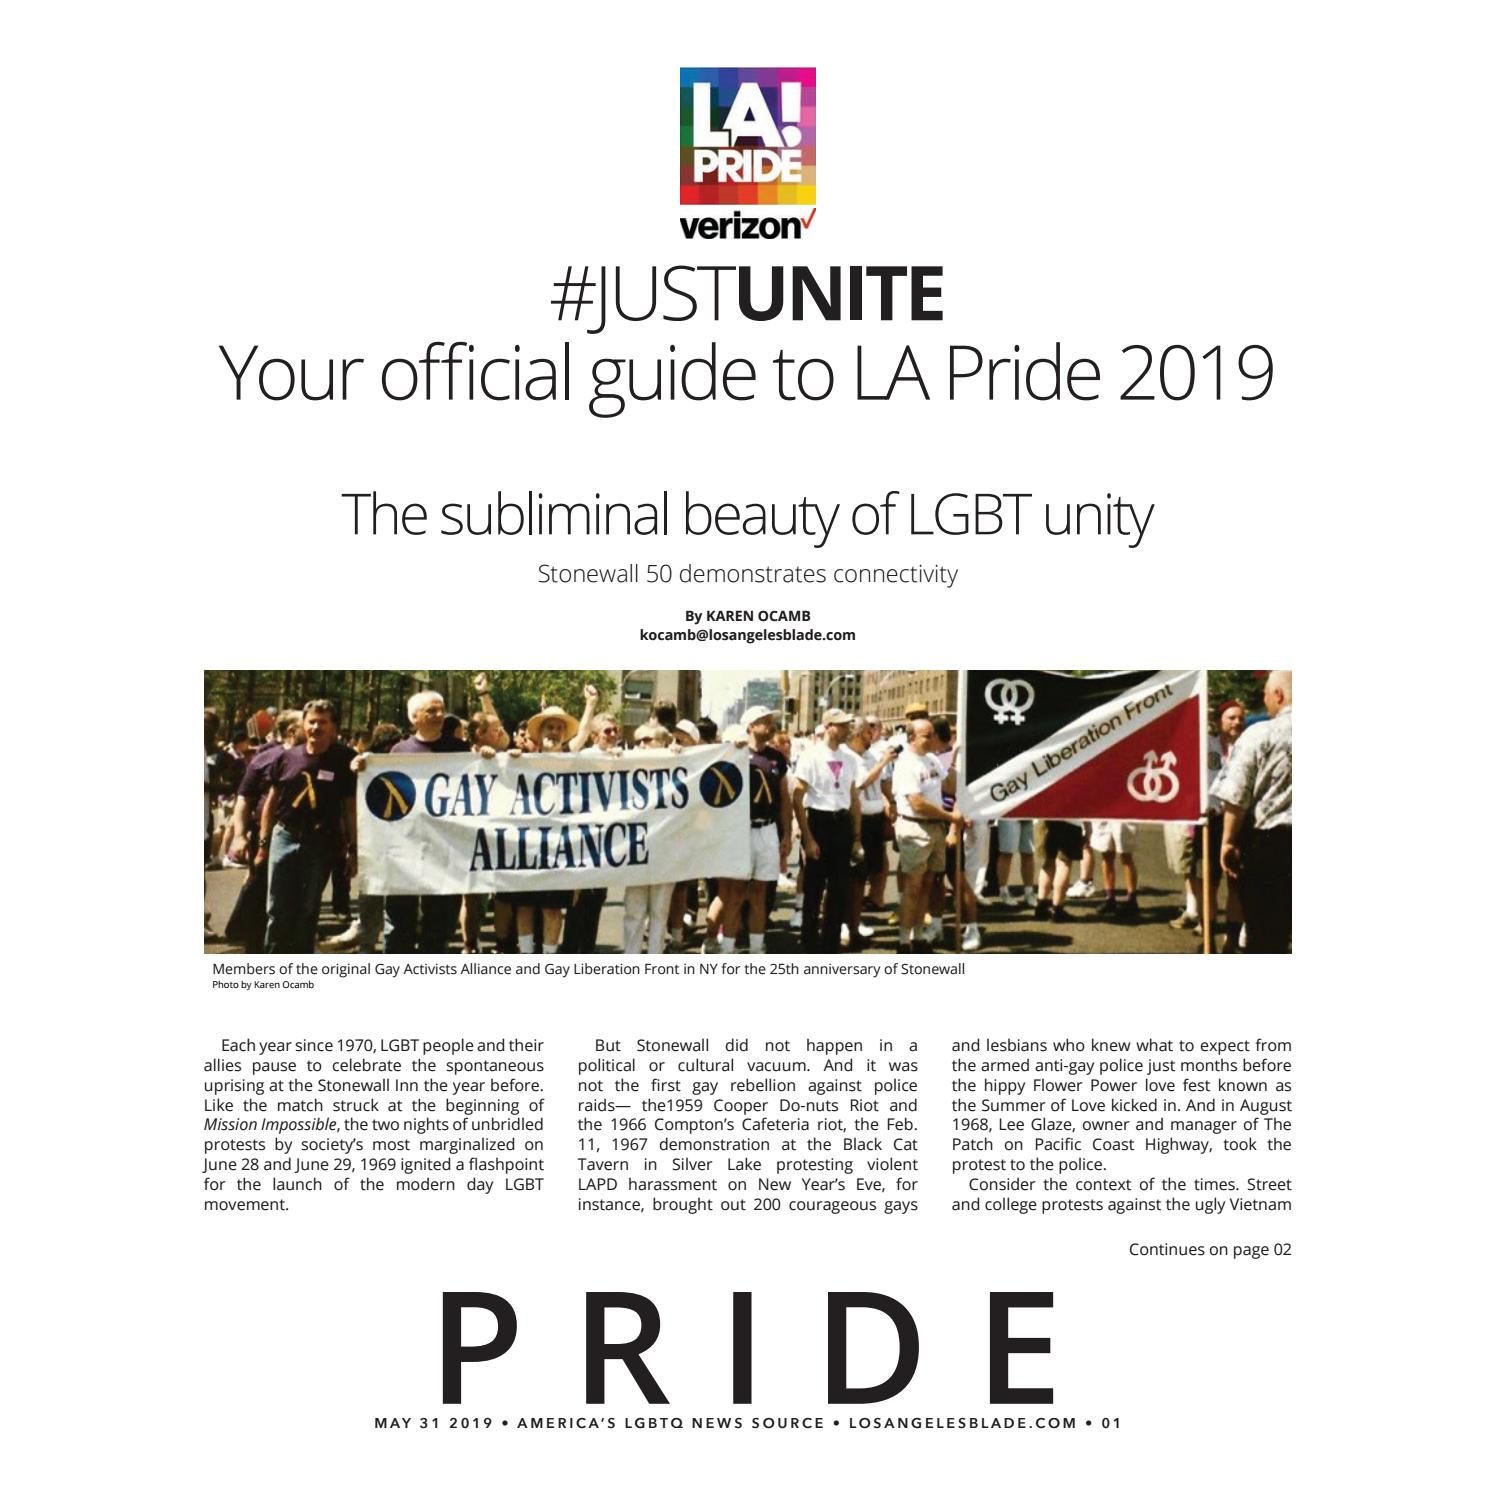 Losangelesblade com, Volume 3, Issue 22, May 31, 2019 Pride Guide by